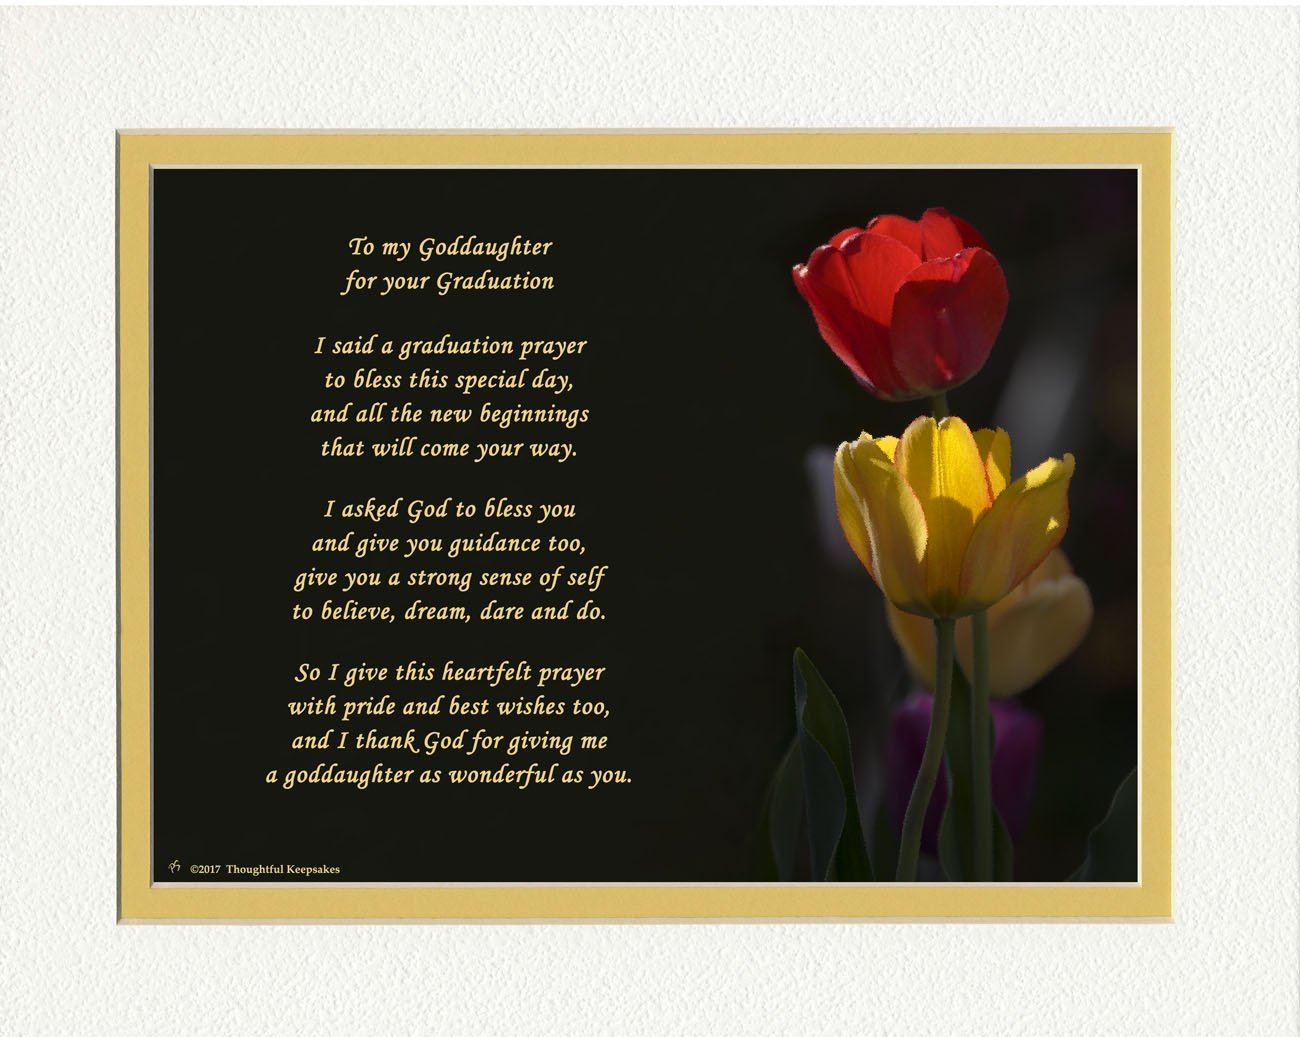 Graduation Gifts Goddaughter with Goddaughter Graduation Prayer Poem Tulips Photo, 8x10 Double Matted. Special Keepsake for Goddaughter. Unique College - High School Grad Gifts.